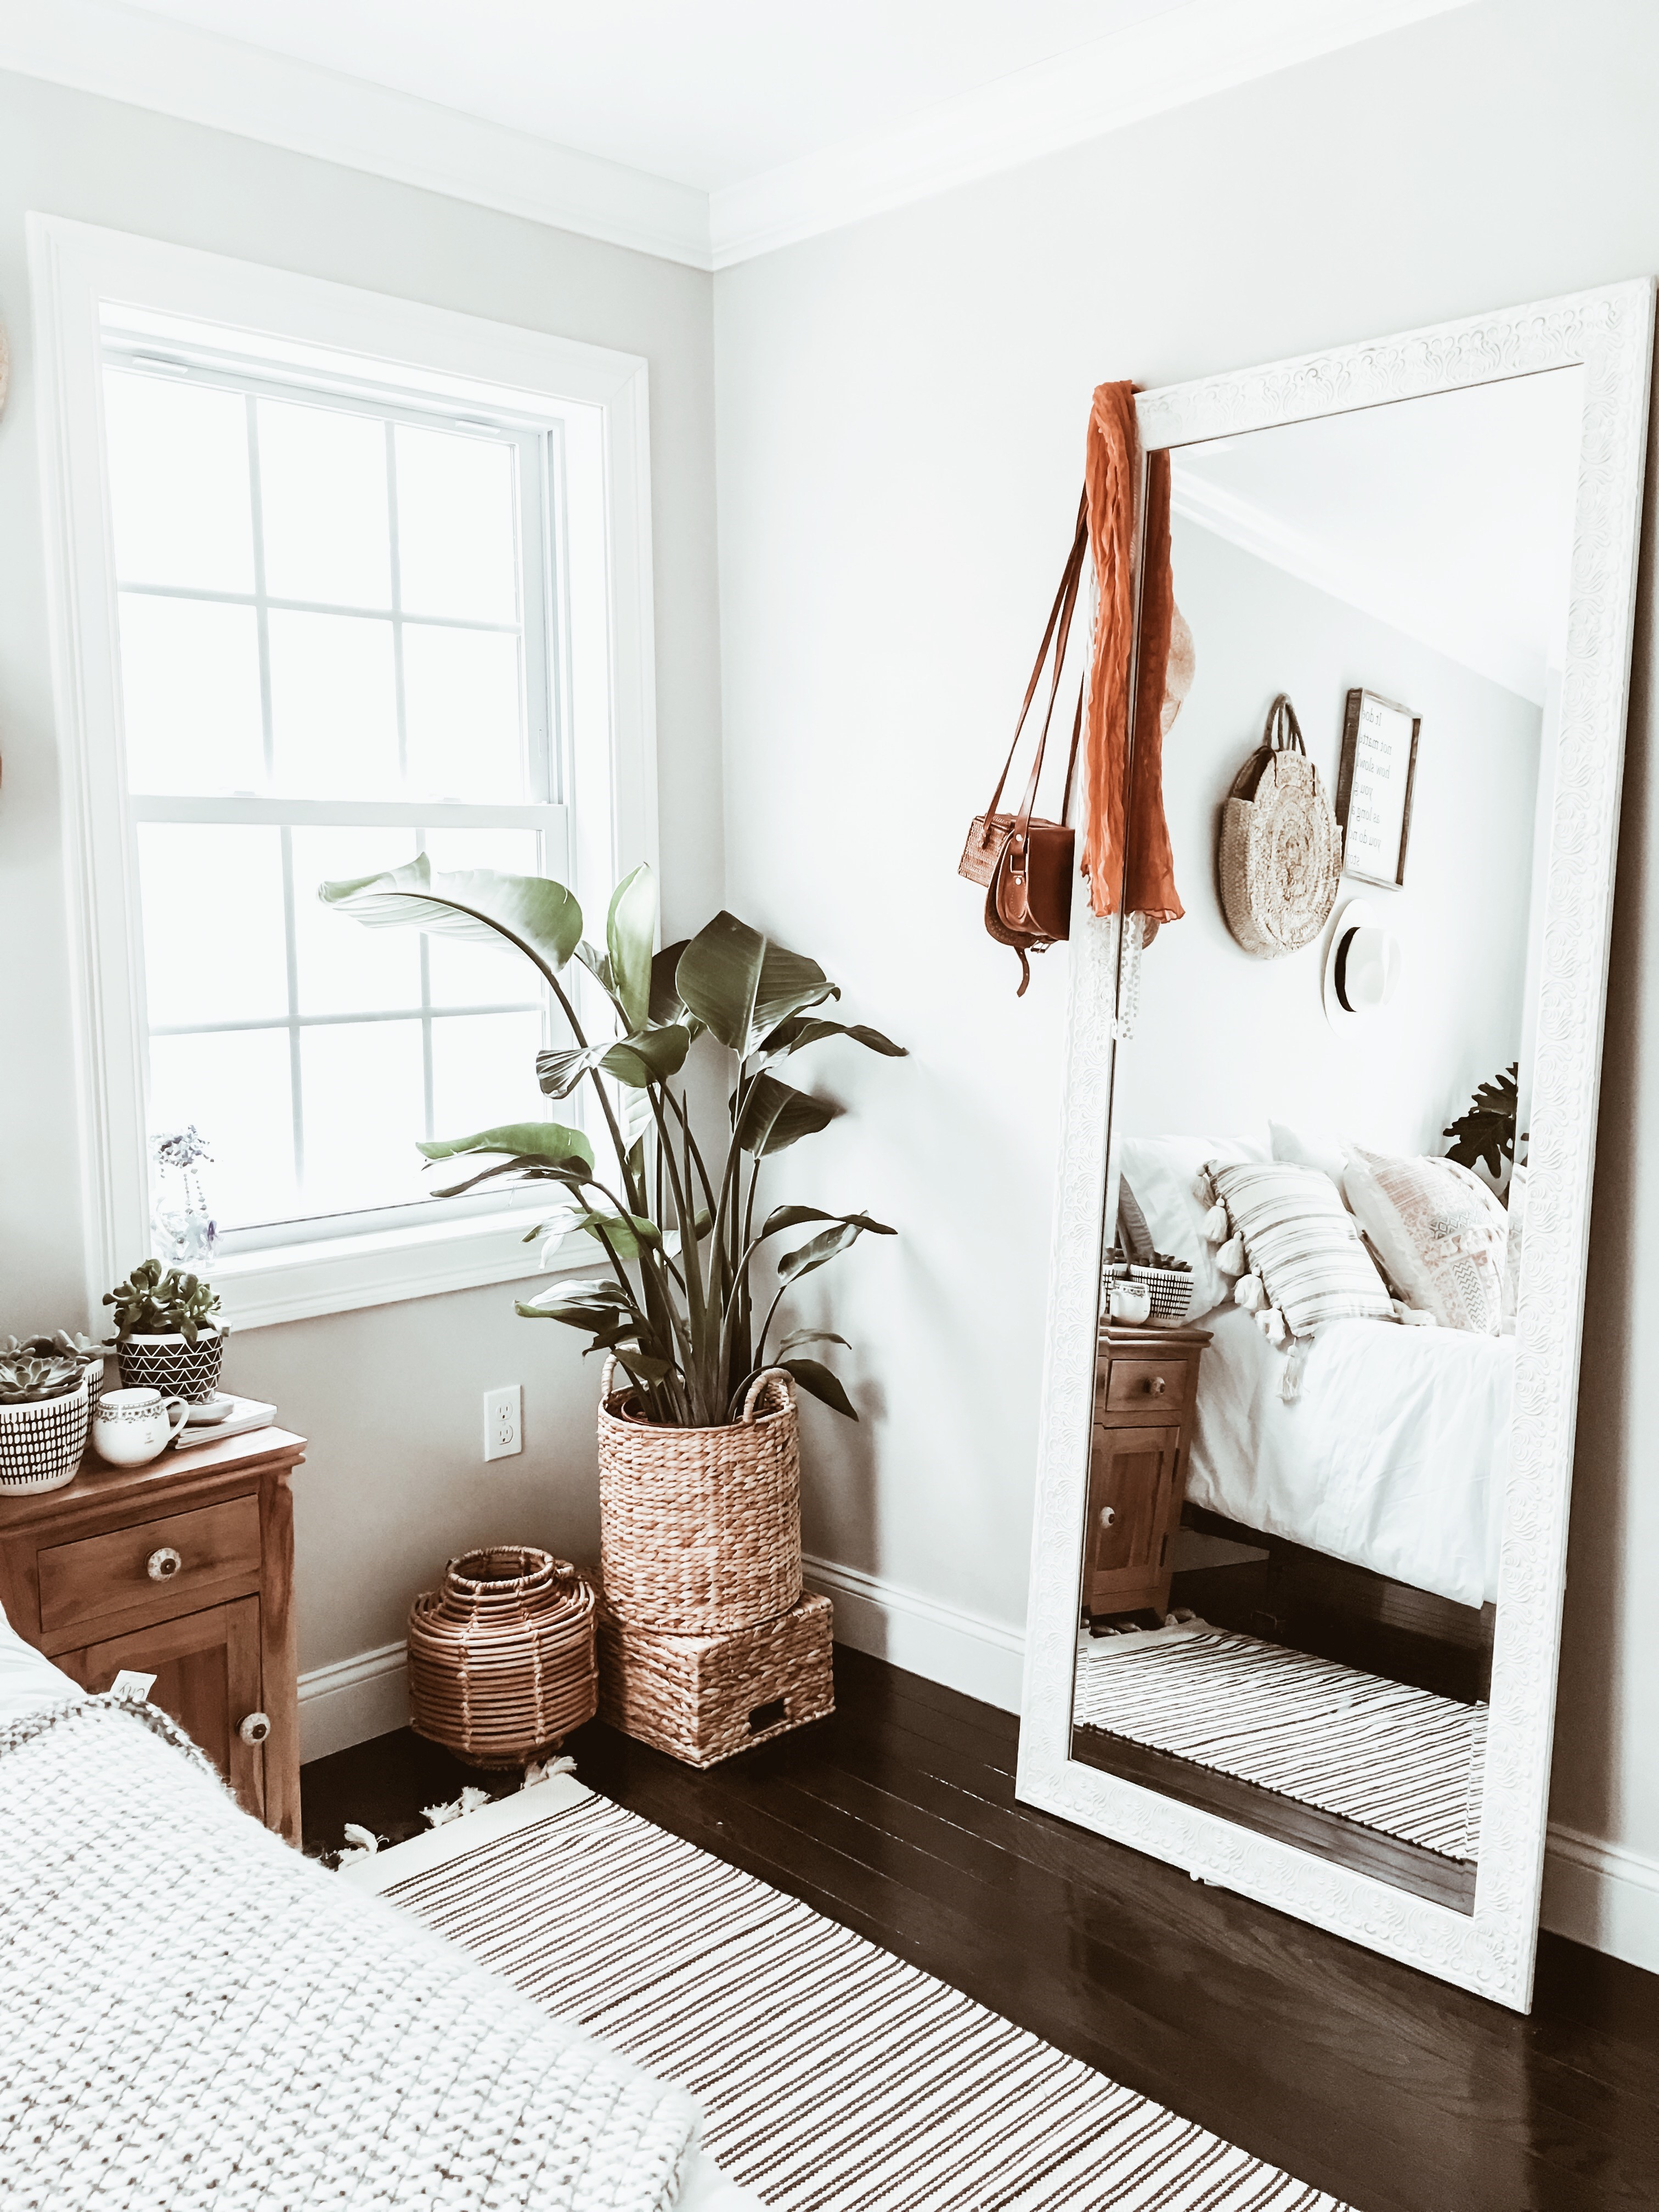 Home Decor Edition: Boho Chic Bedroom Makeover - WANDER x LUXE on Boho Bedroom Decor  id=48536